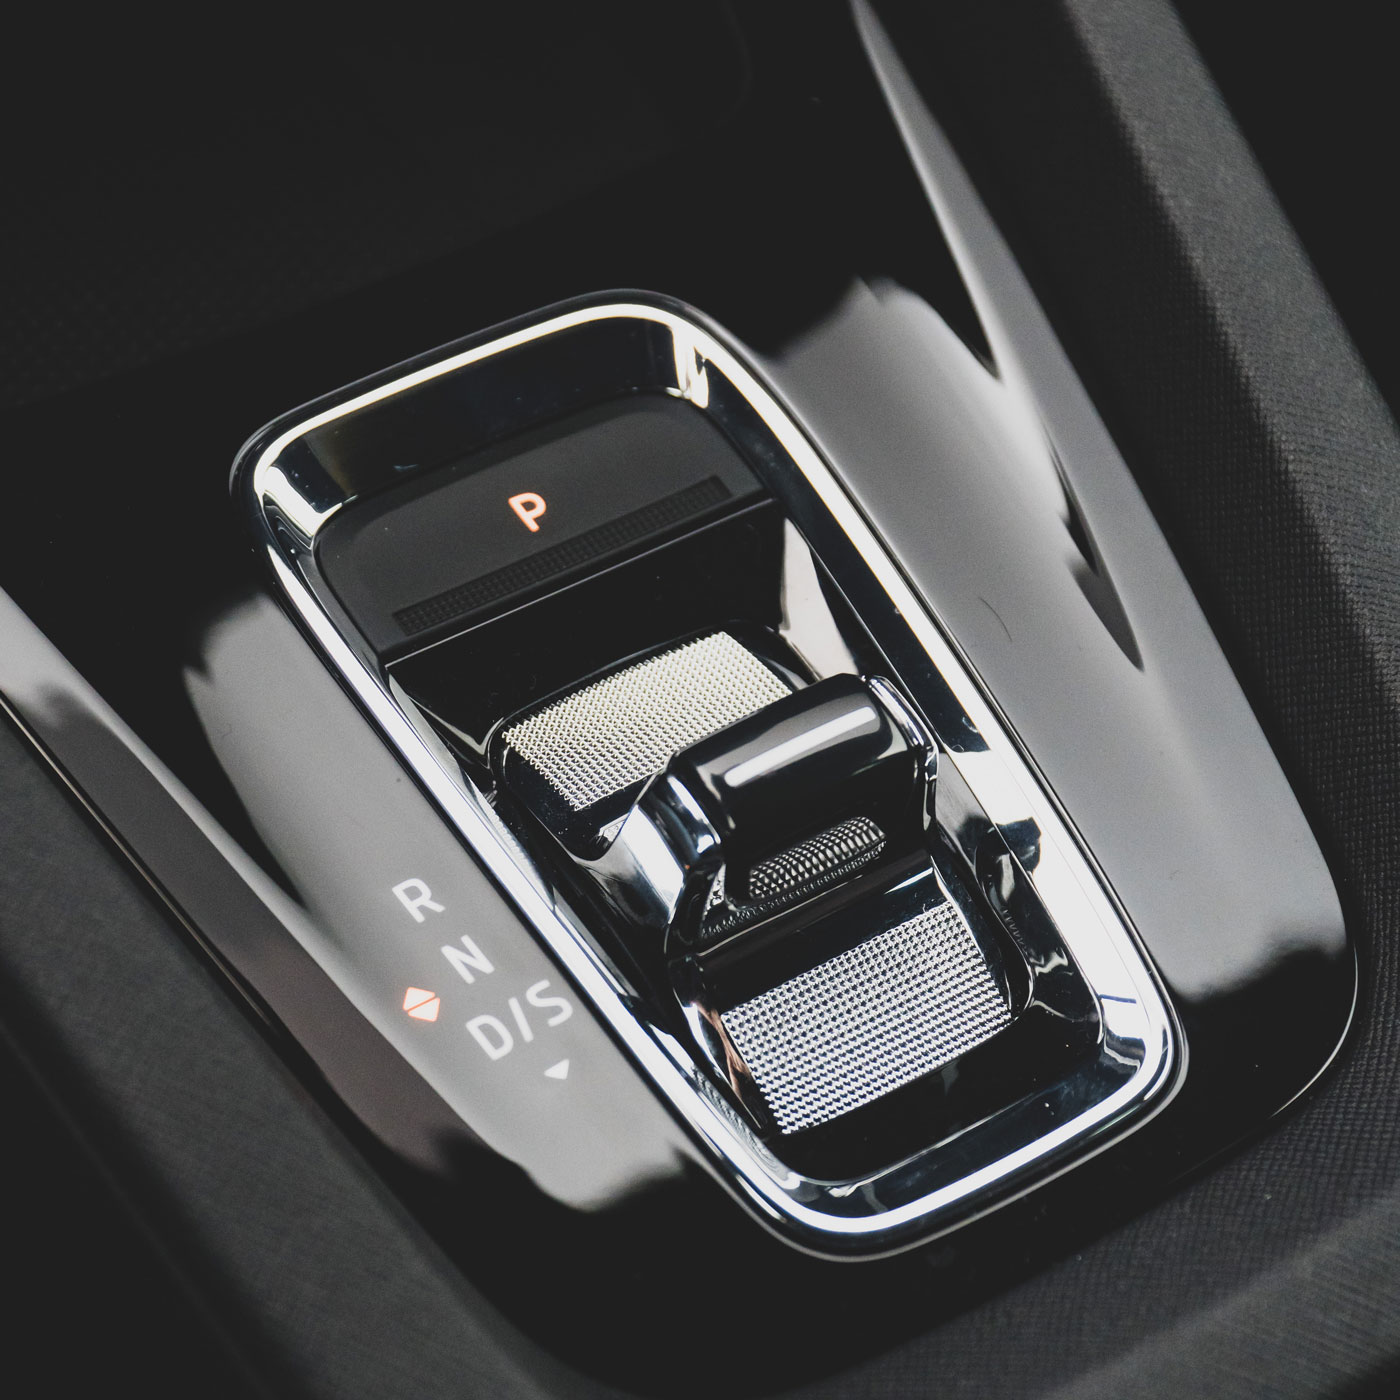 SKODA OCTAVIA RS - Shift by wire